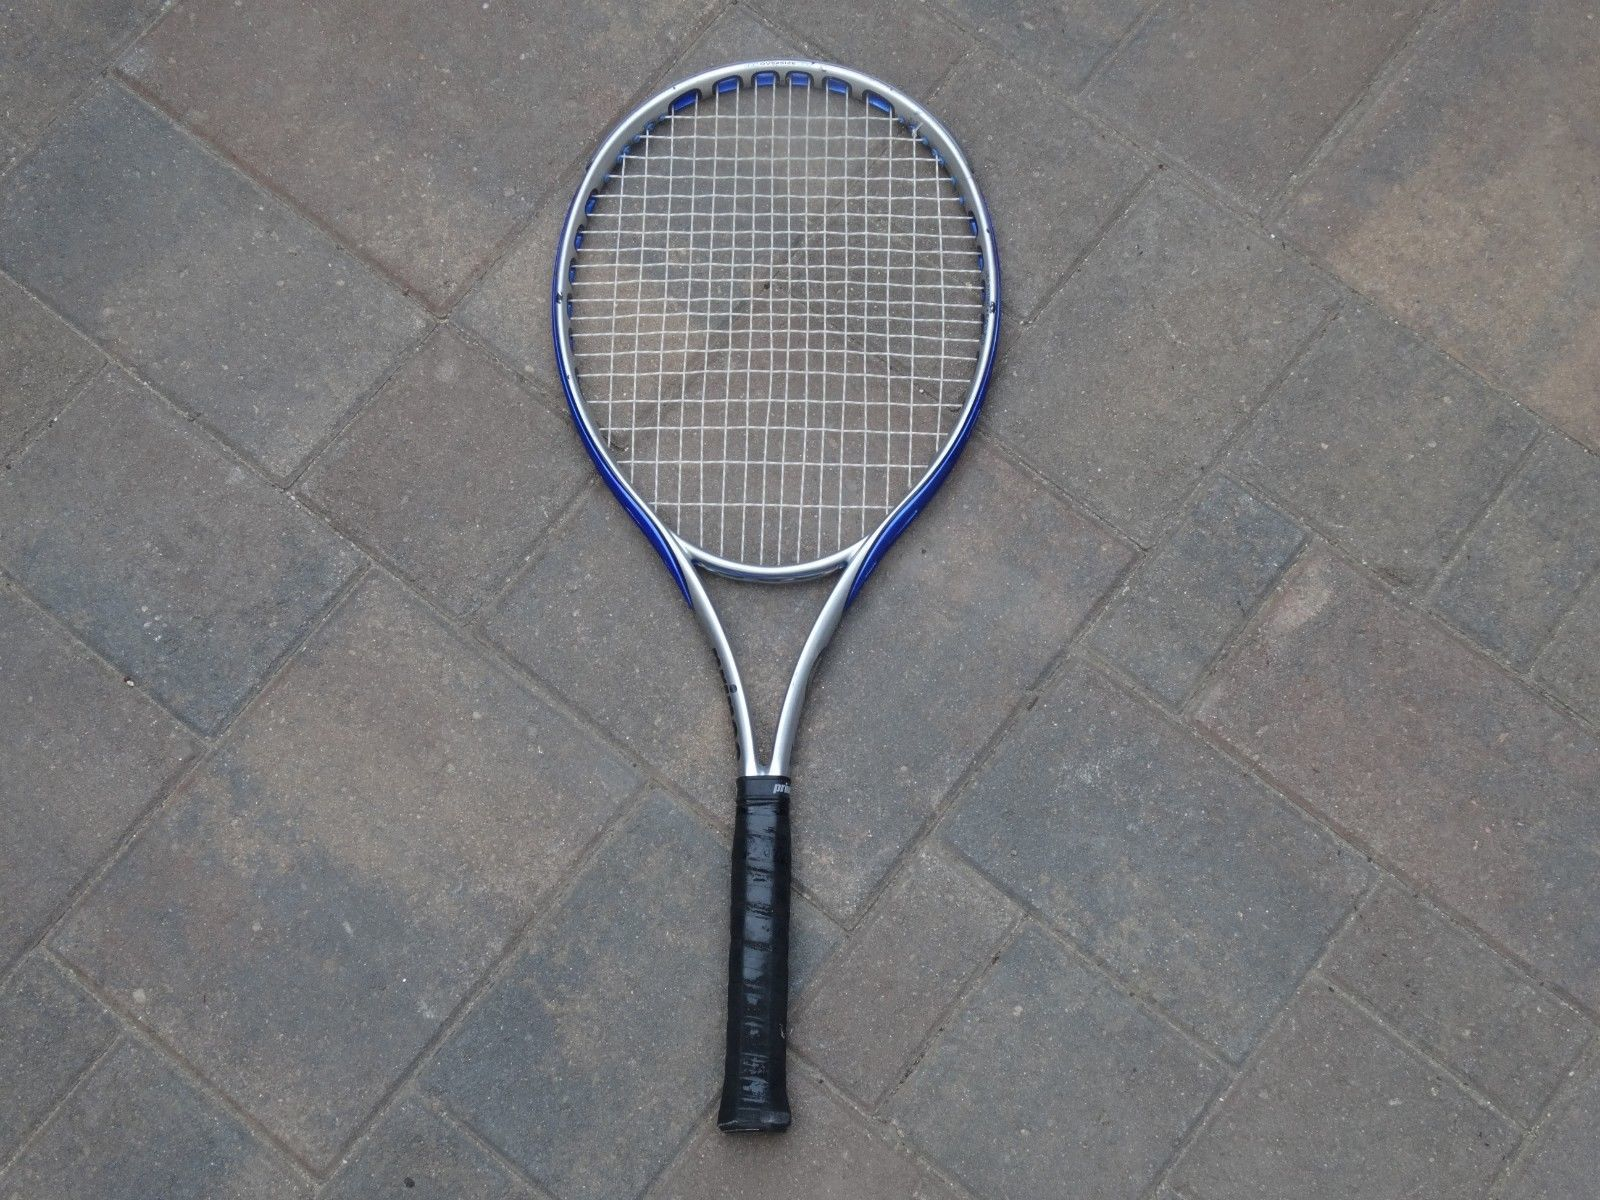 PRINCE O3 SPEEDPORT BLUE 110 TENNIS RACQUET 3 (4 3/8) PRINCE used racket